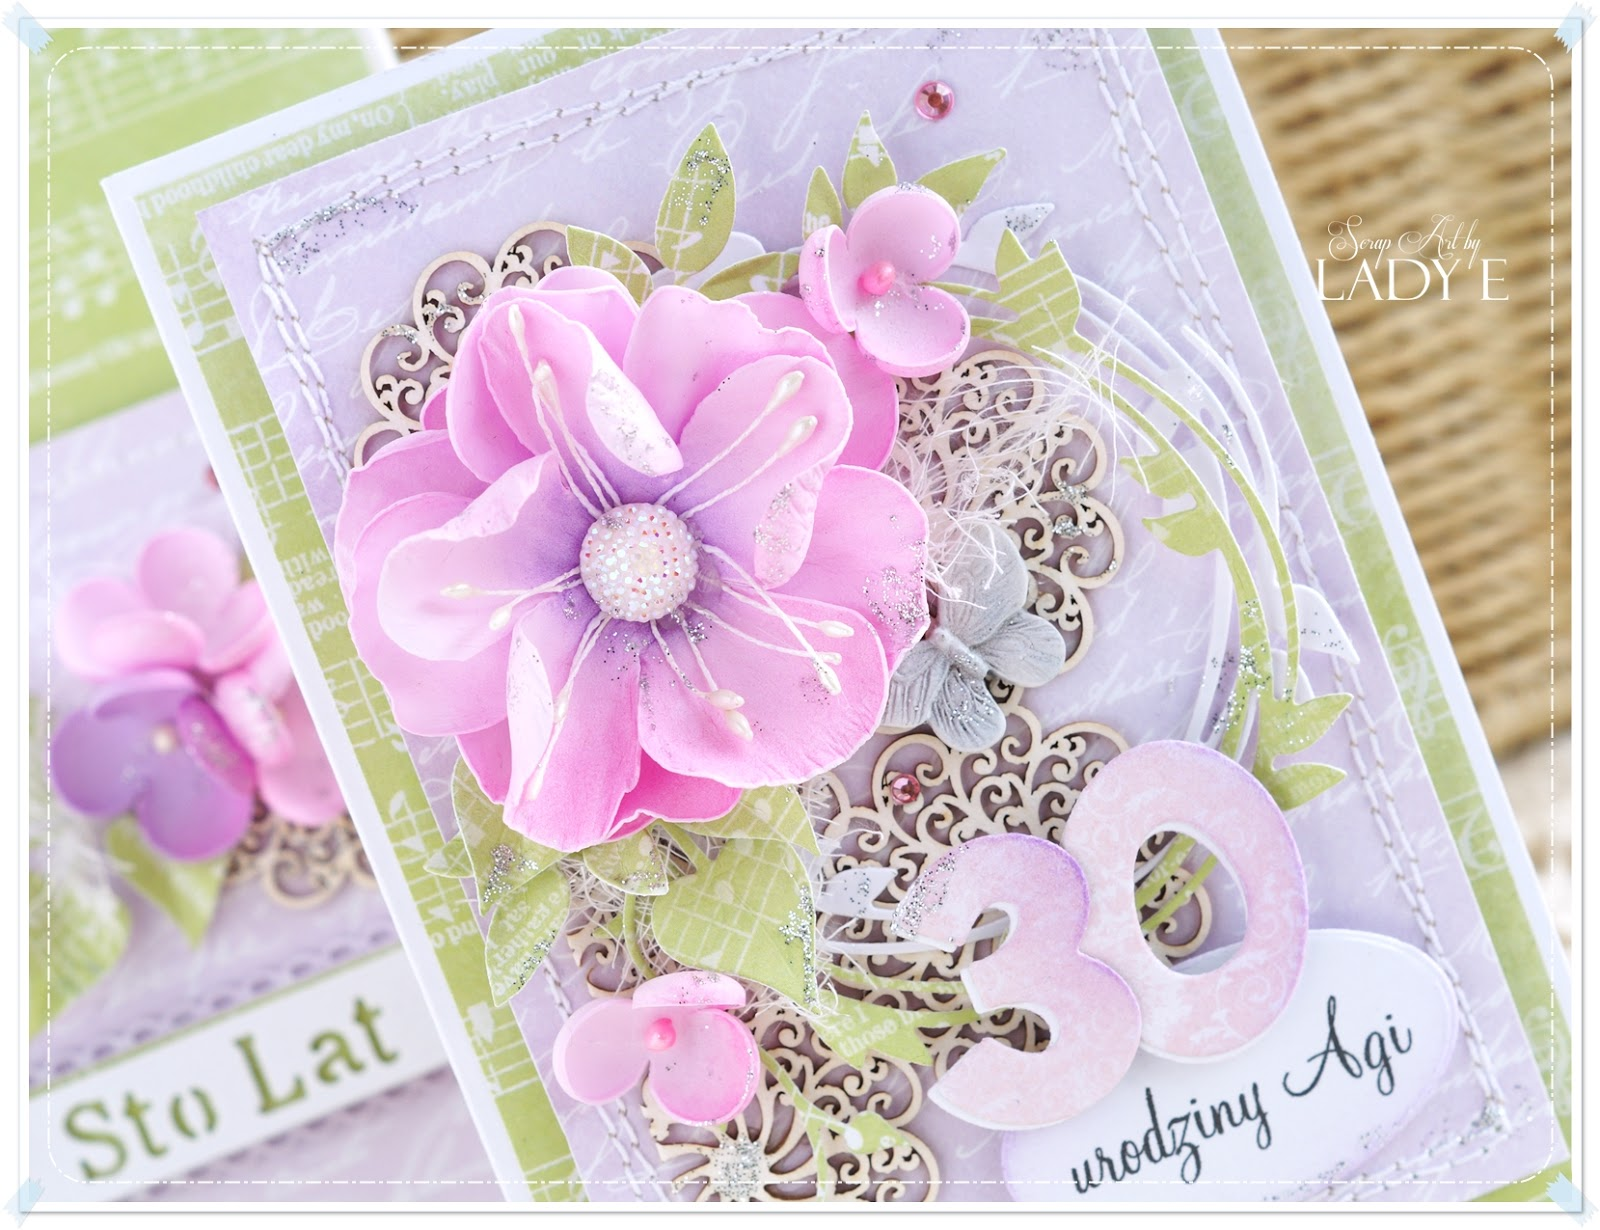 Foamiran flowers everything you need to know scrap art by lady e foamiran flowers are something you would like to try i offer an online workshop step by step videos mightylinksfo